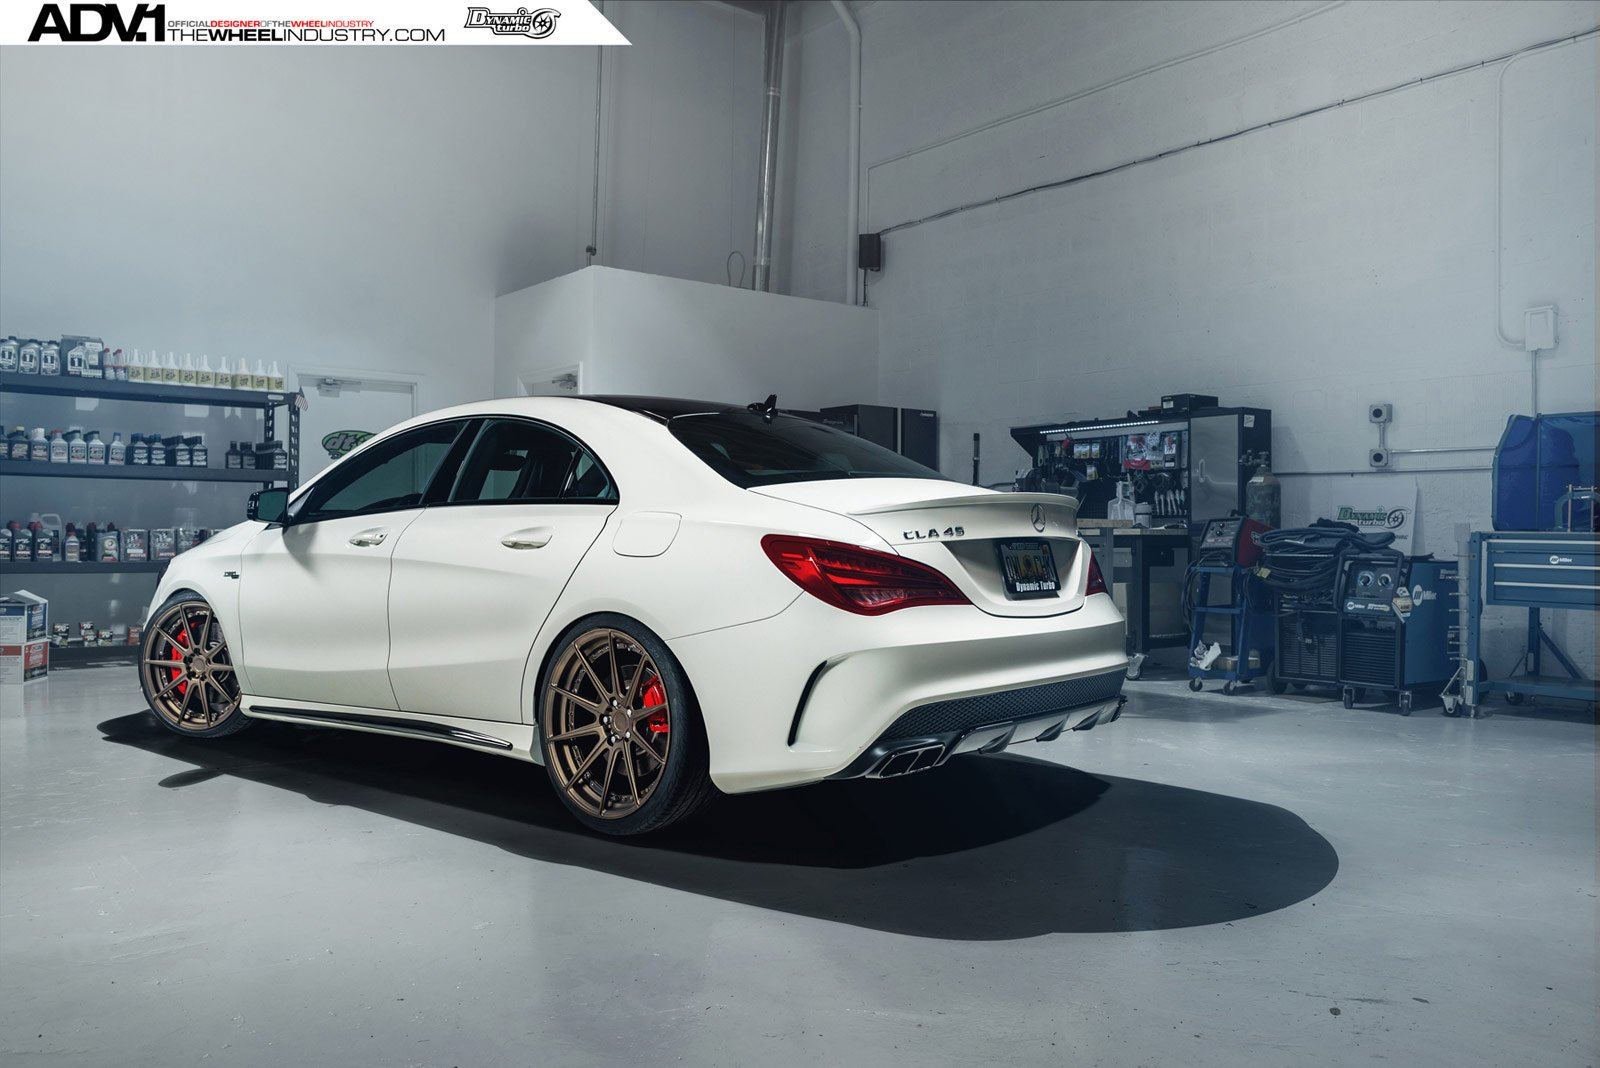 2014 adv1 wheels mercedes cla 45 amg cars wallpaper for 2014 mercedes benz cla 45